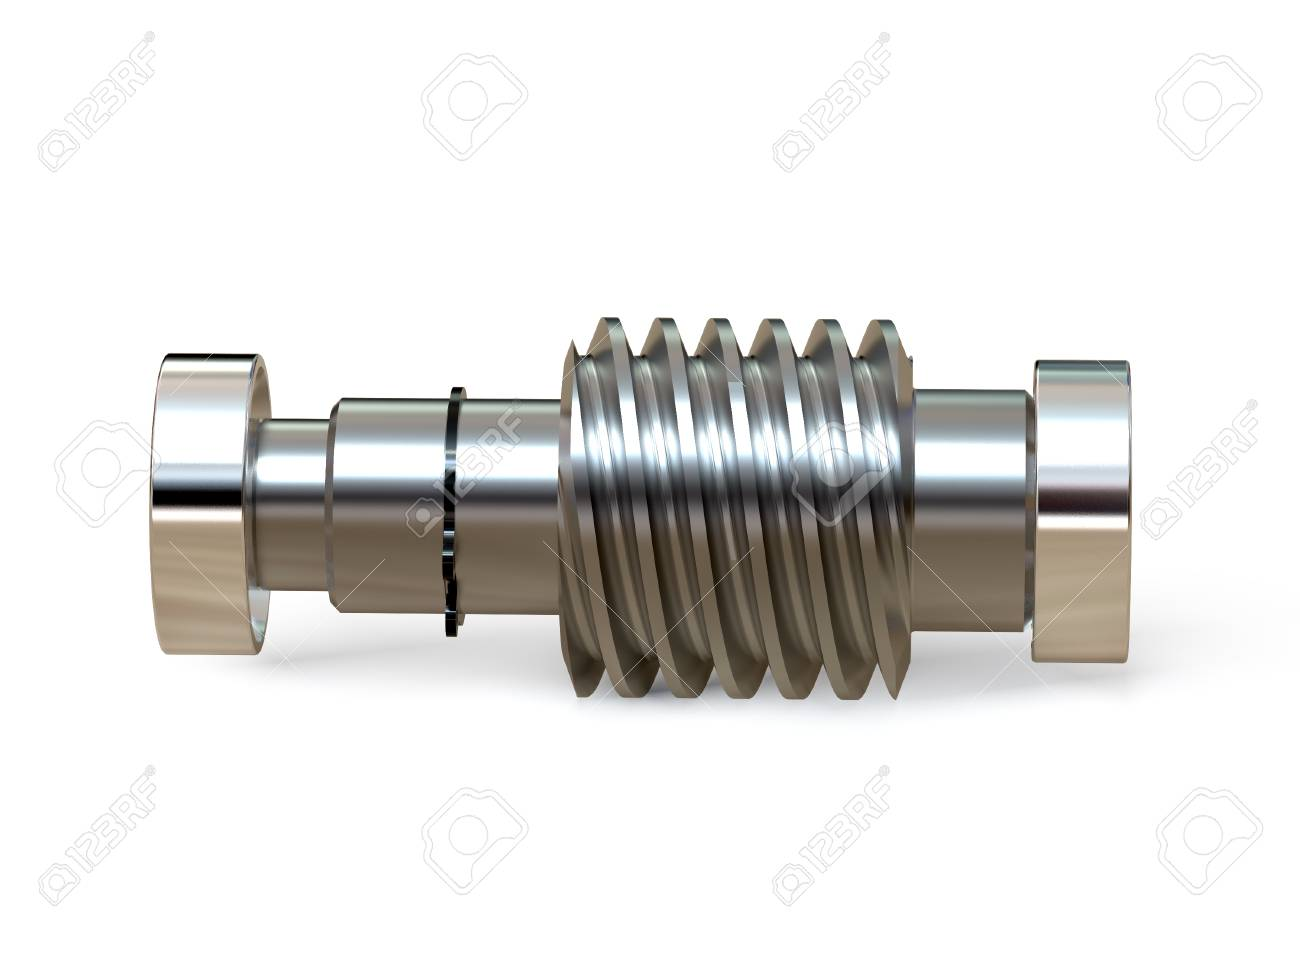 Worm shaft with bearings  Worm-gear  Mechanics for training